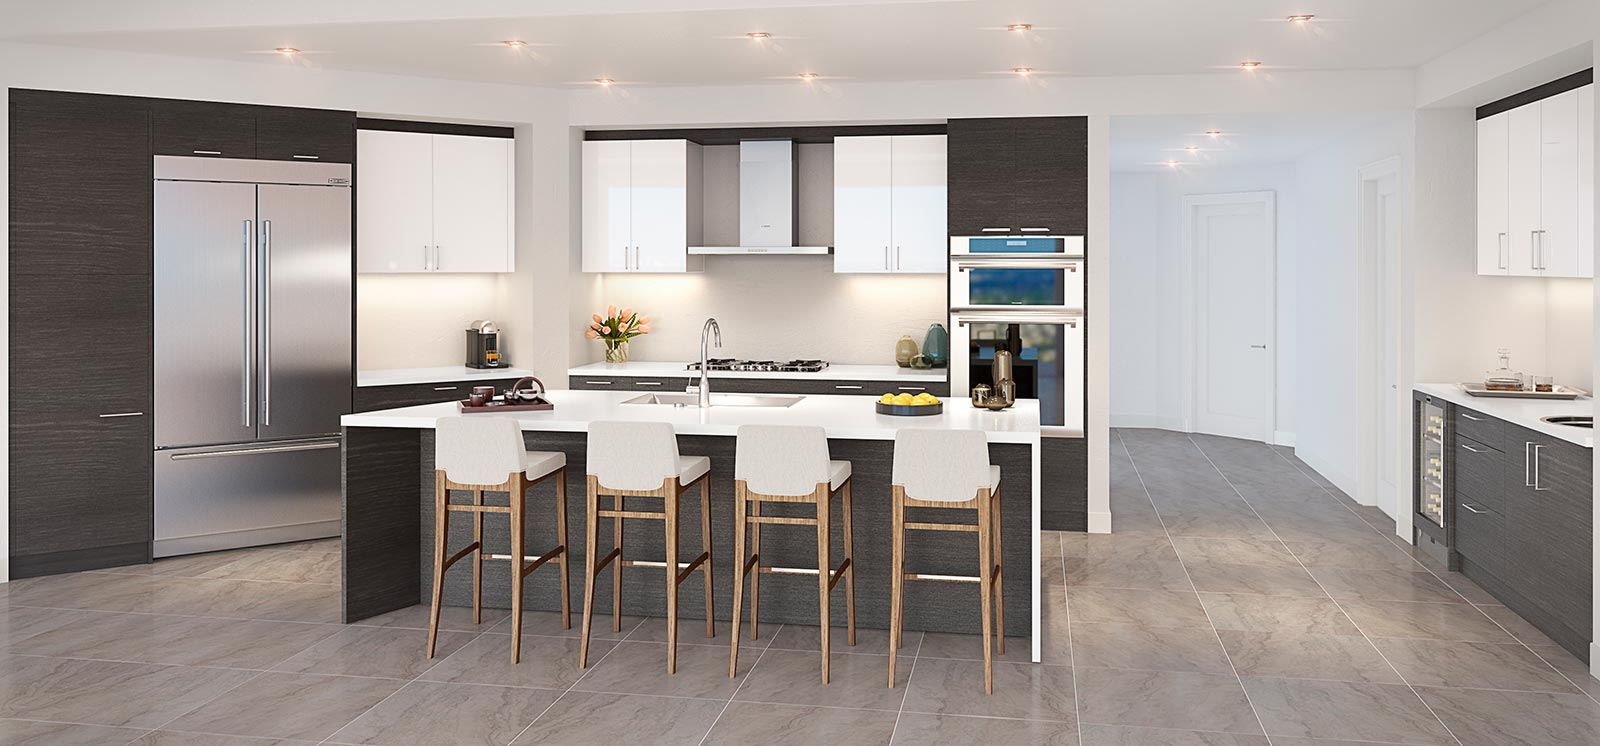 100 Las Olas Kitchen Rendering Euro Dark